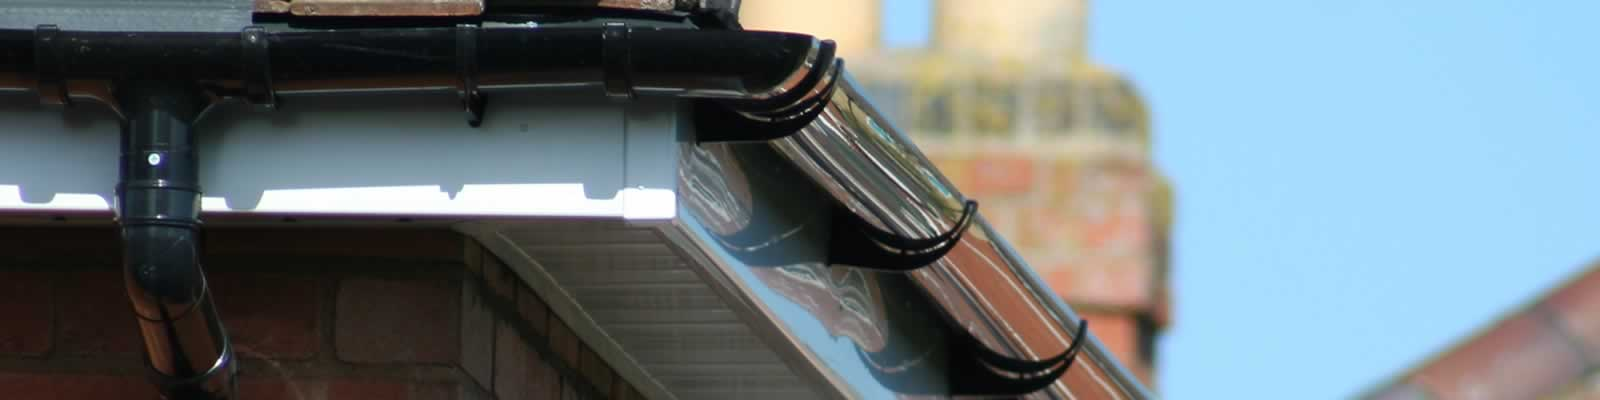 PVCu guttering in Smethwick and Walsall